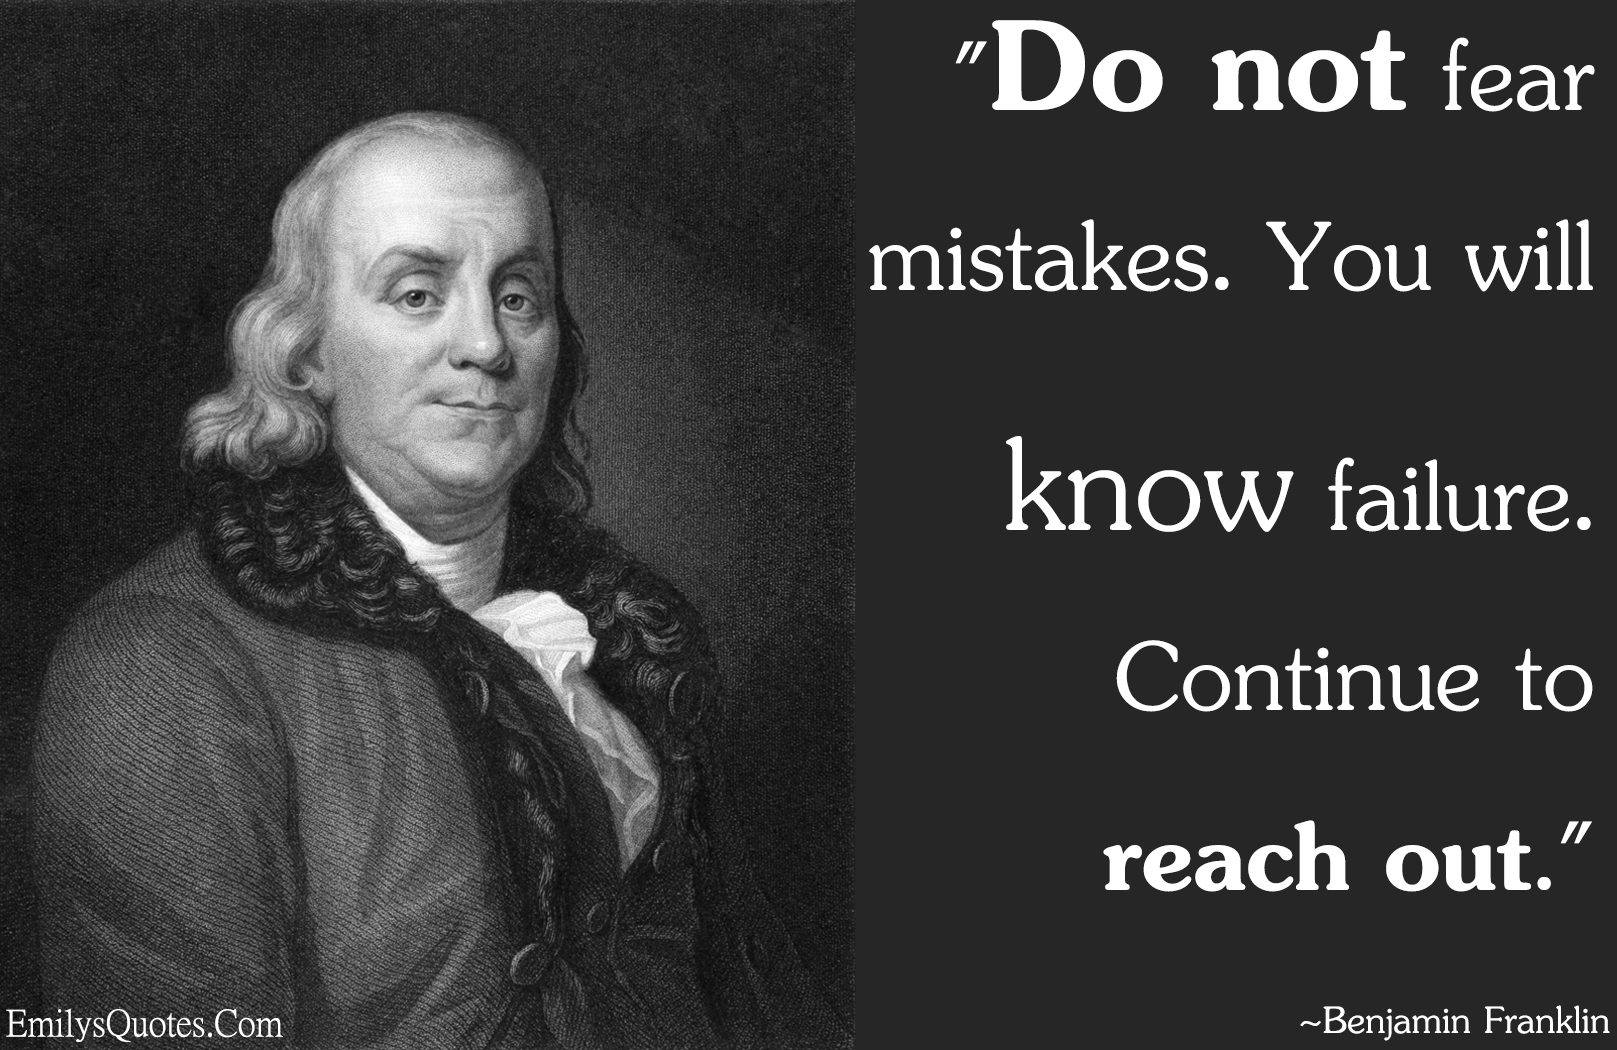 EmilysQuotes.Com - fear, mistake, failure, encouraging, Benjamin Franklin, experience, intelligence